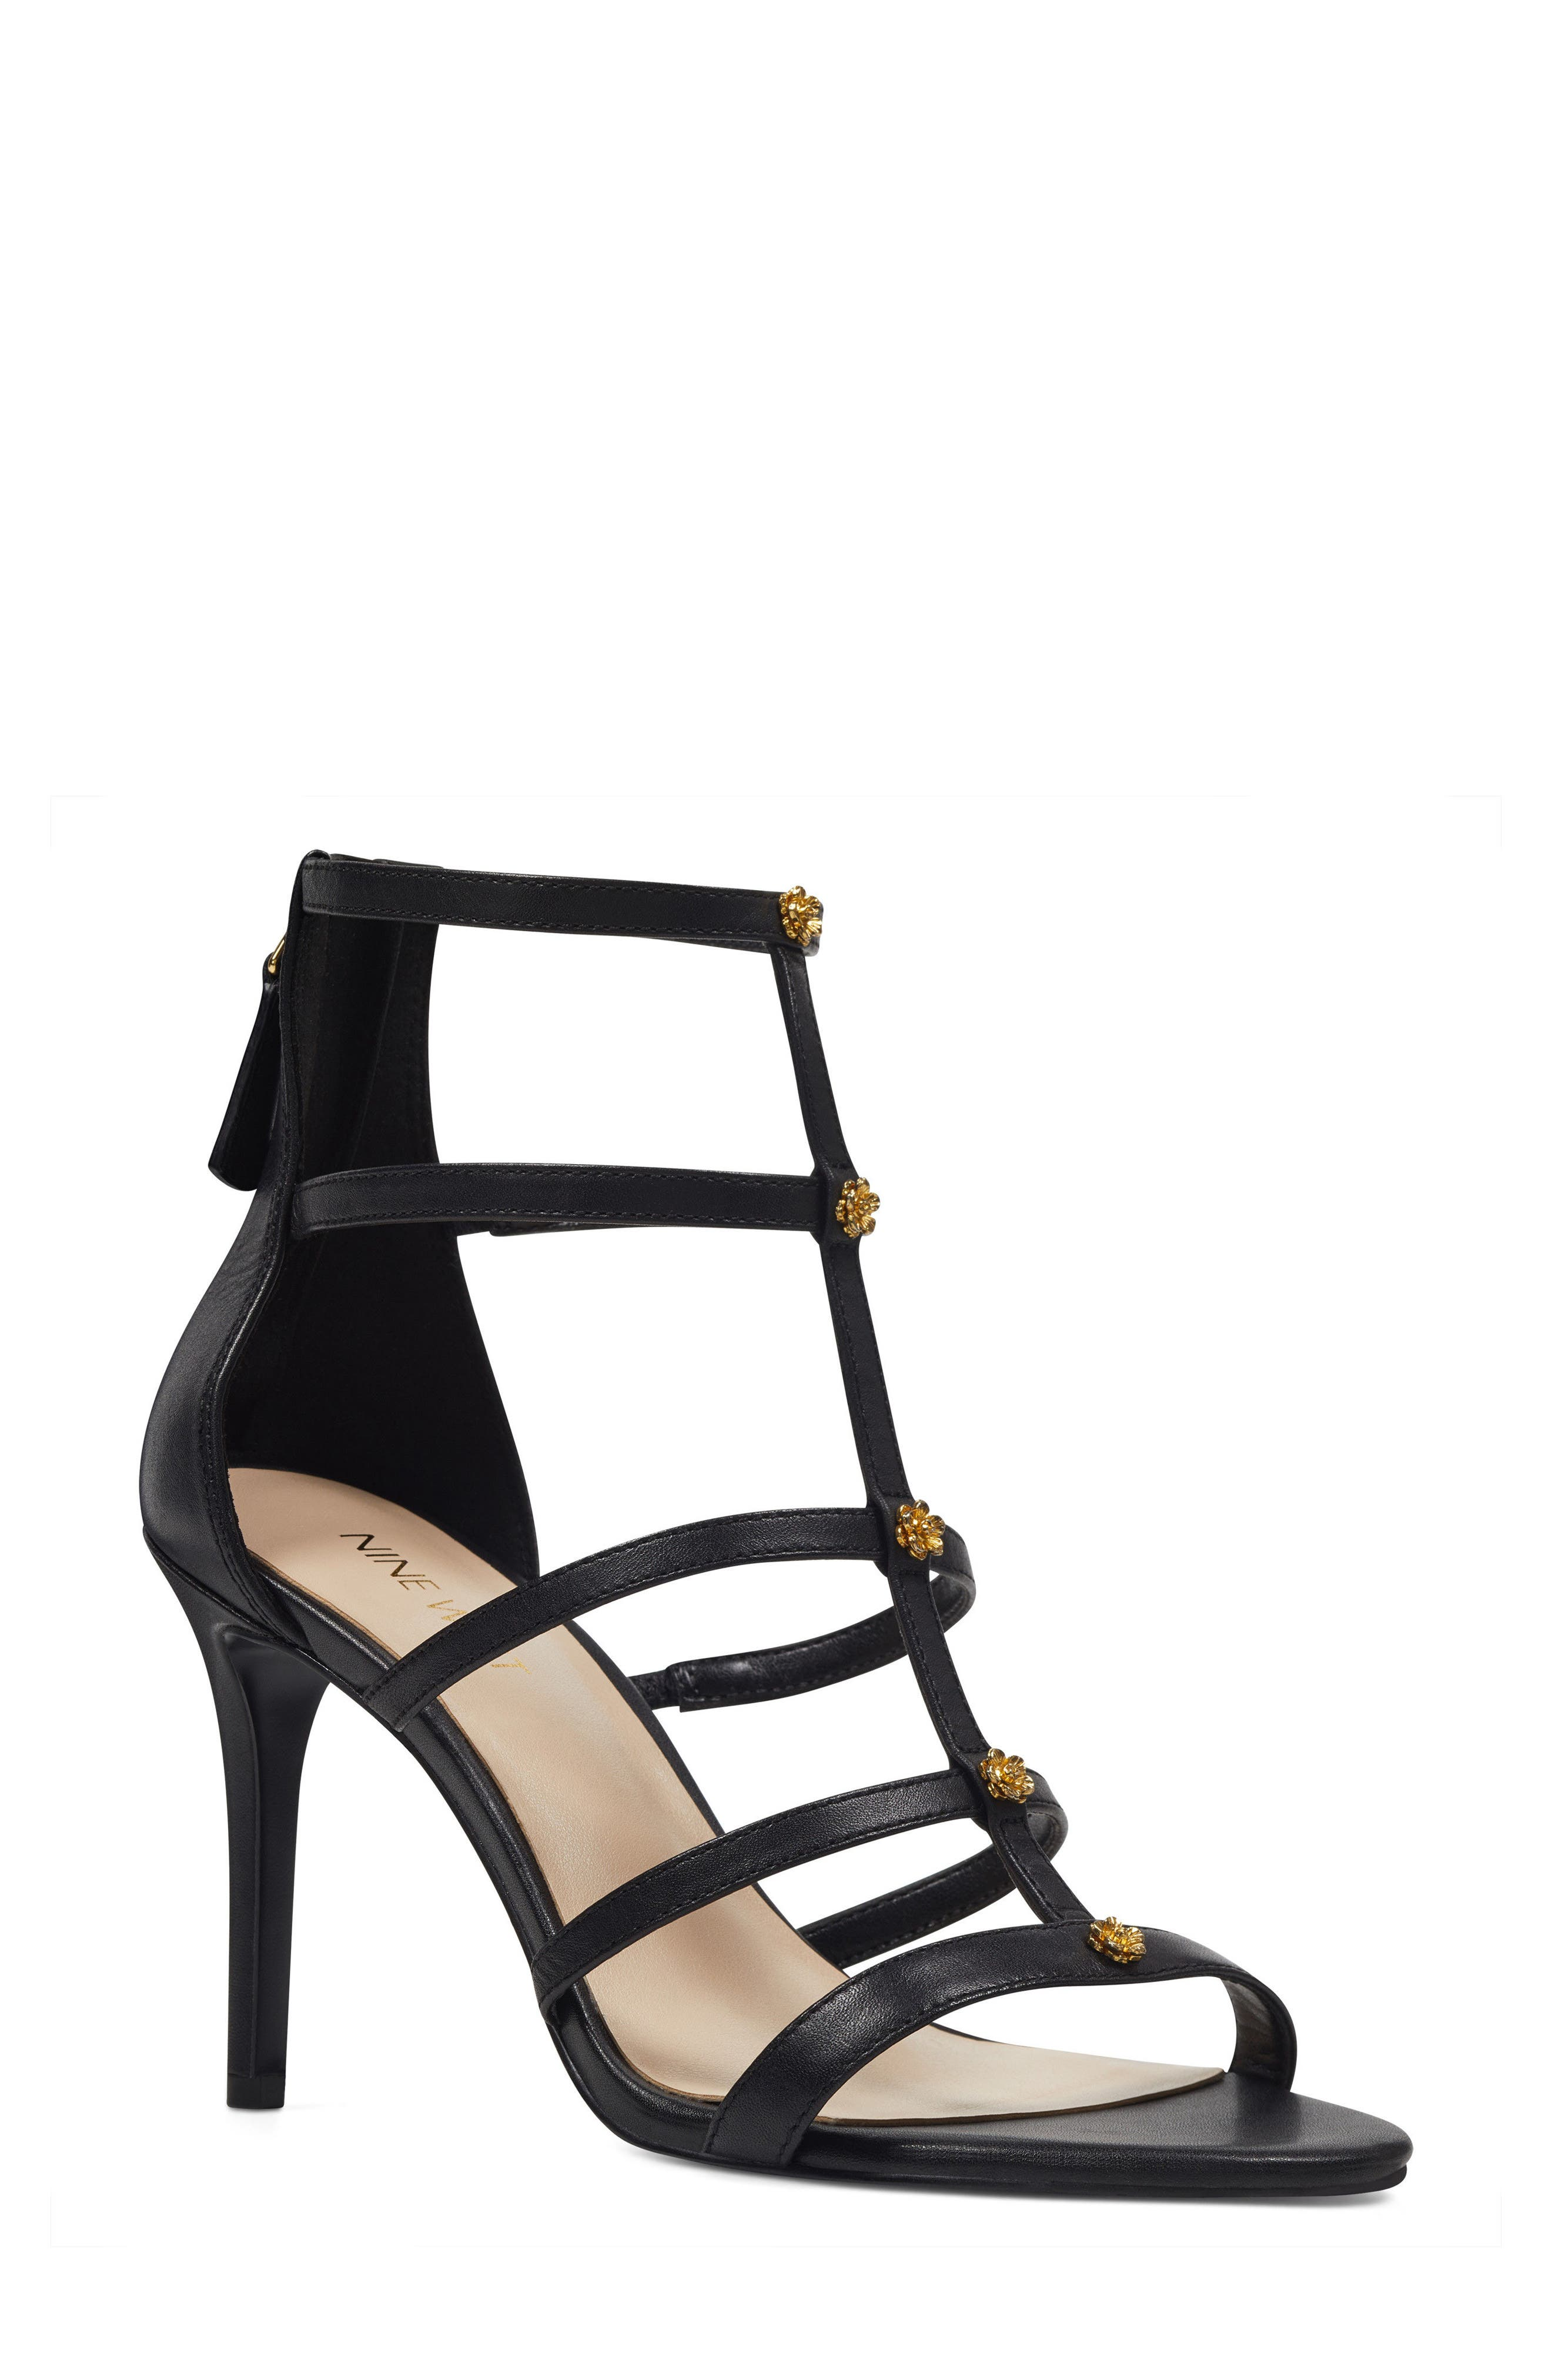 Nayler Strappy Sandal,                             Main thumbnail 1, color,                             Black Leather